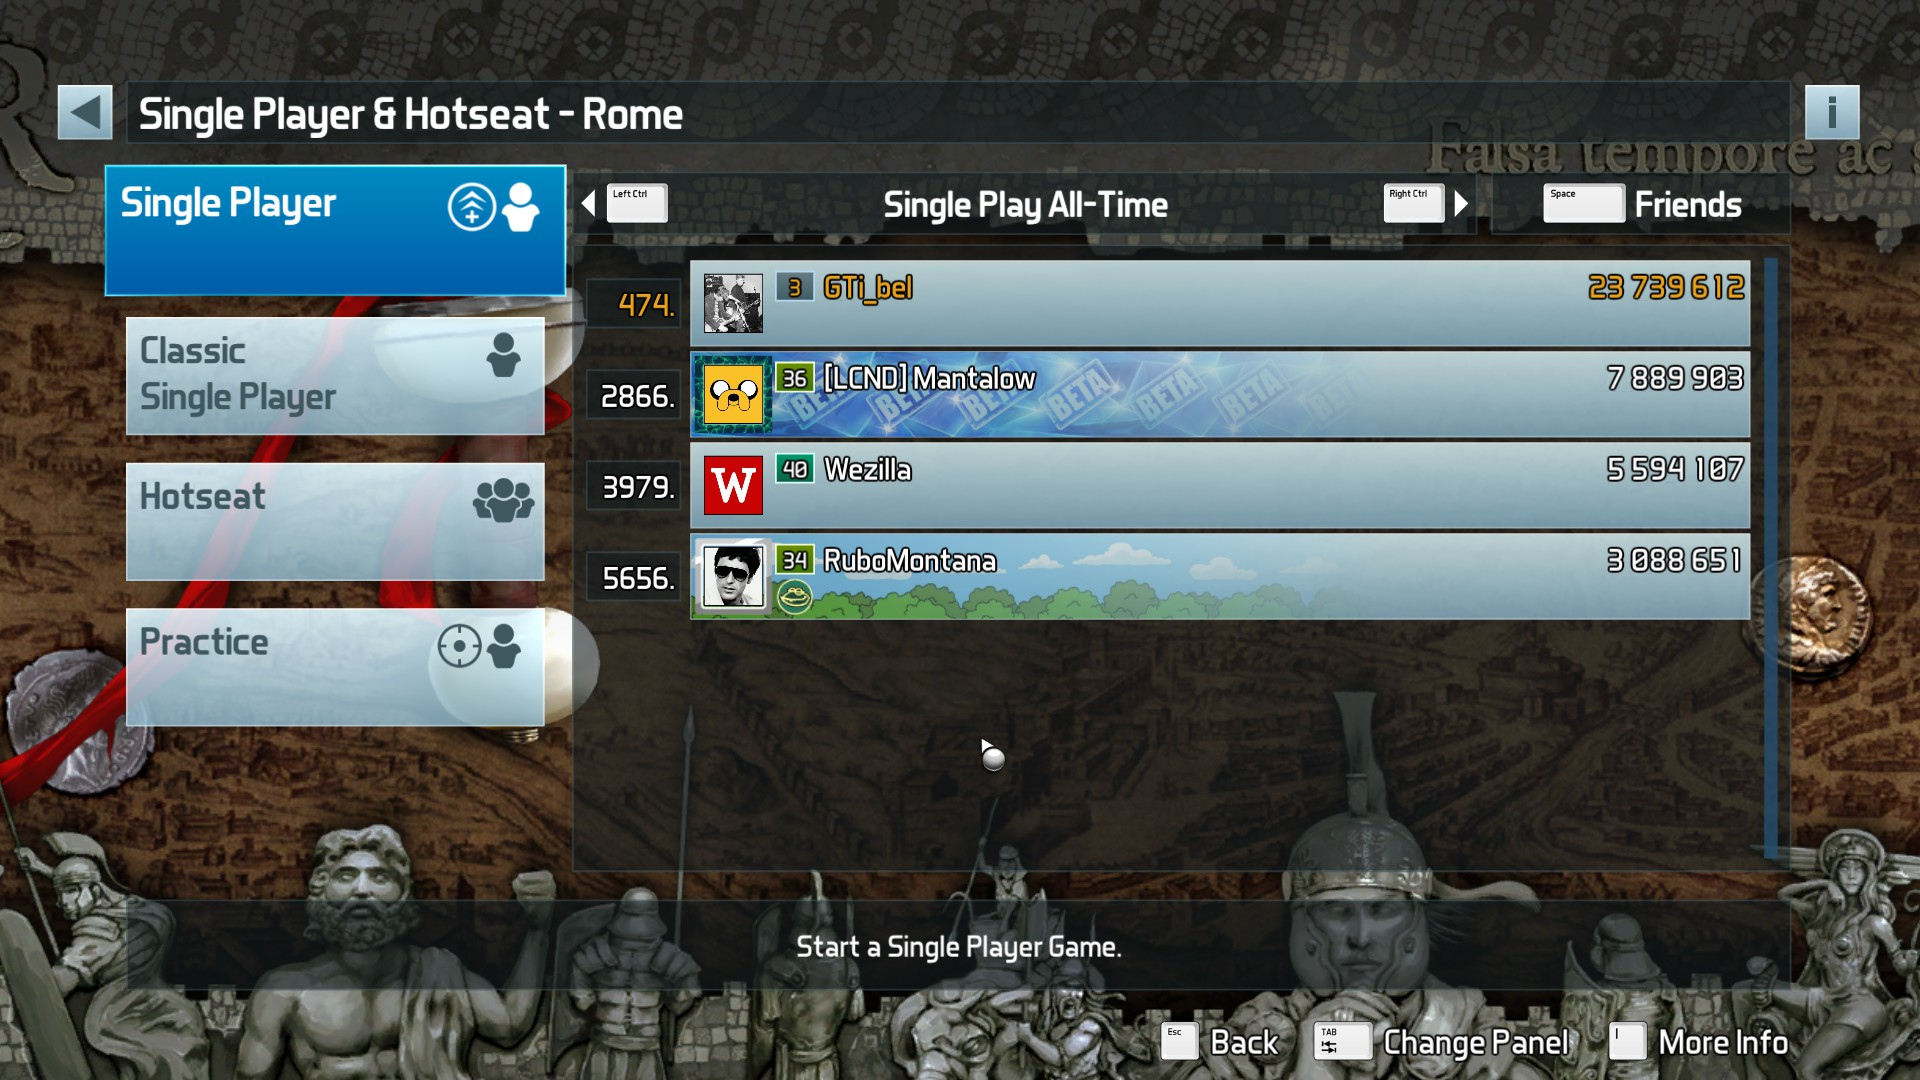 GTibel: Pinball FX3: Rome (PC) 23,739,612 points on 2018-03-03 07:24:48